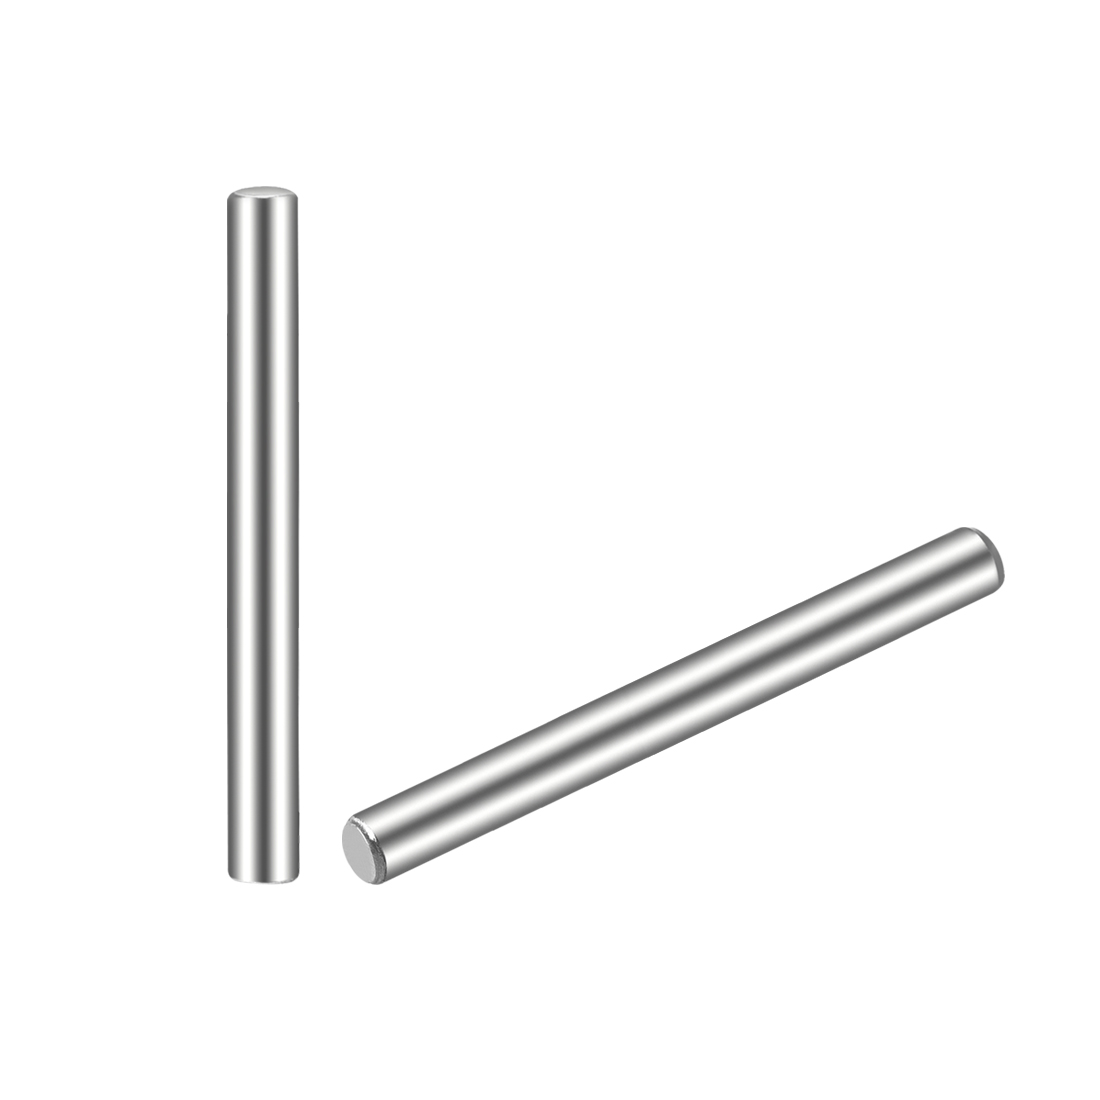 uxcell 25Pcs 2.5mm x 25mm Dowel Pin 304 Stainless Steel Cylindrical Shelf Support Pin|Dowel| |  - title=